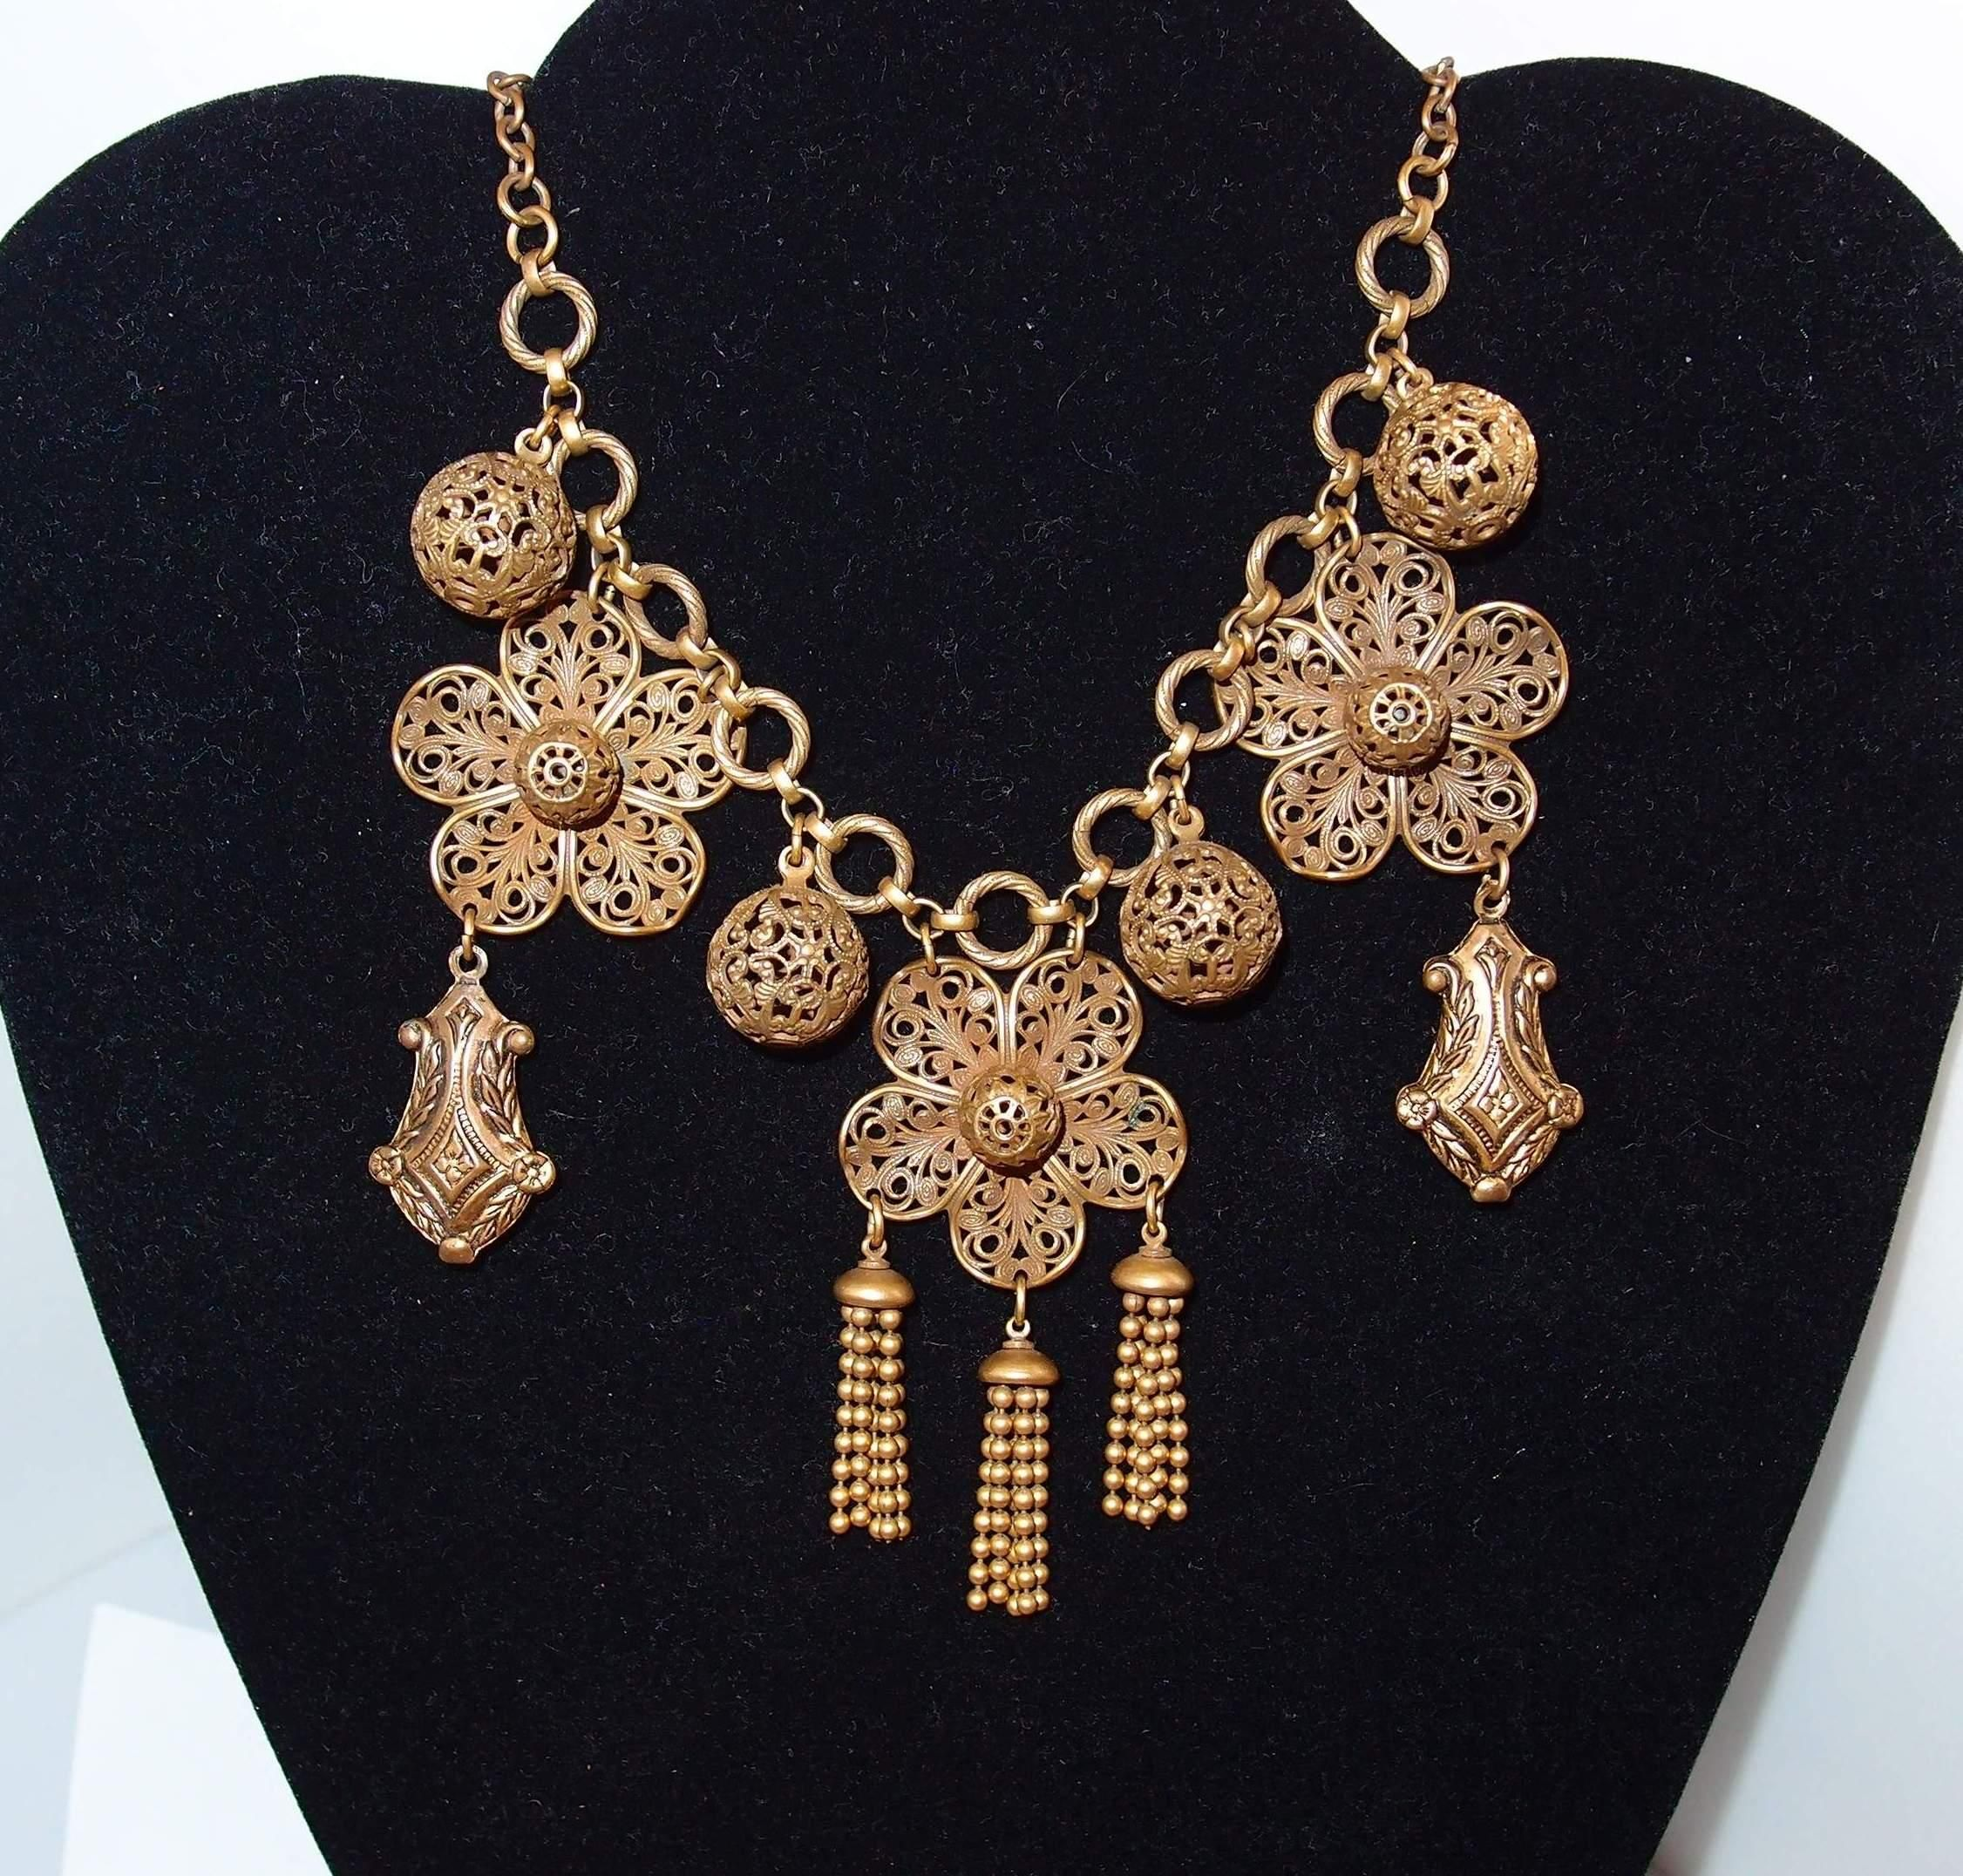 Vintage Puffy Brass Charm Necklace with Tassels